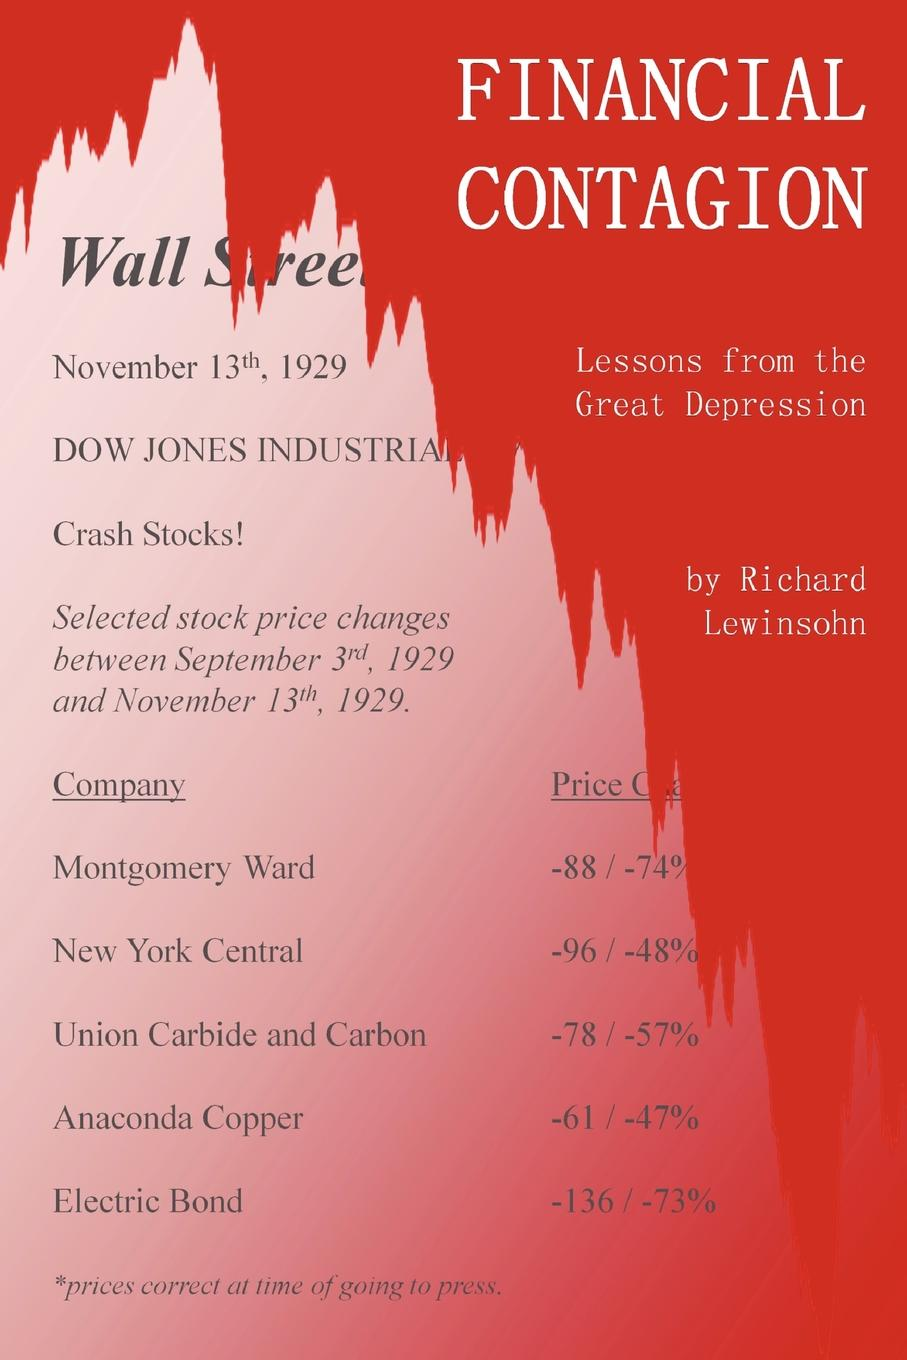 Richard Lewinsohn-Morus. Financial Contagion. Lessons from the Great Depression